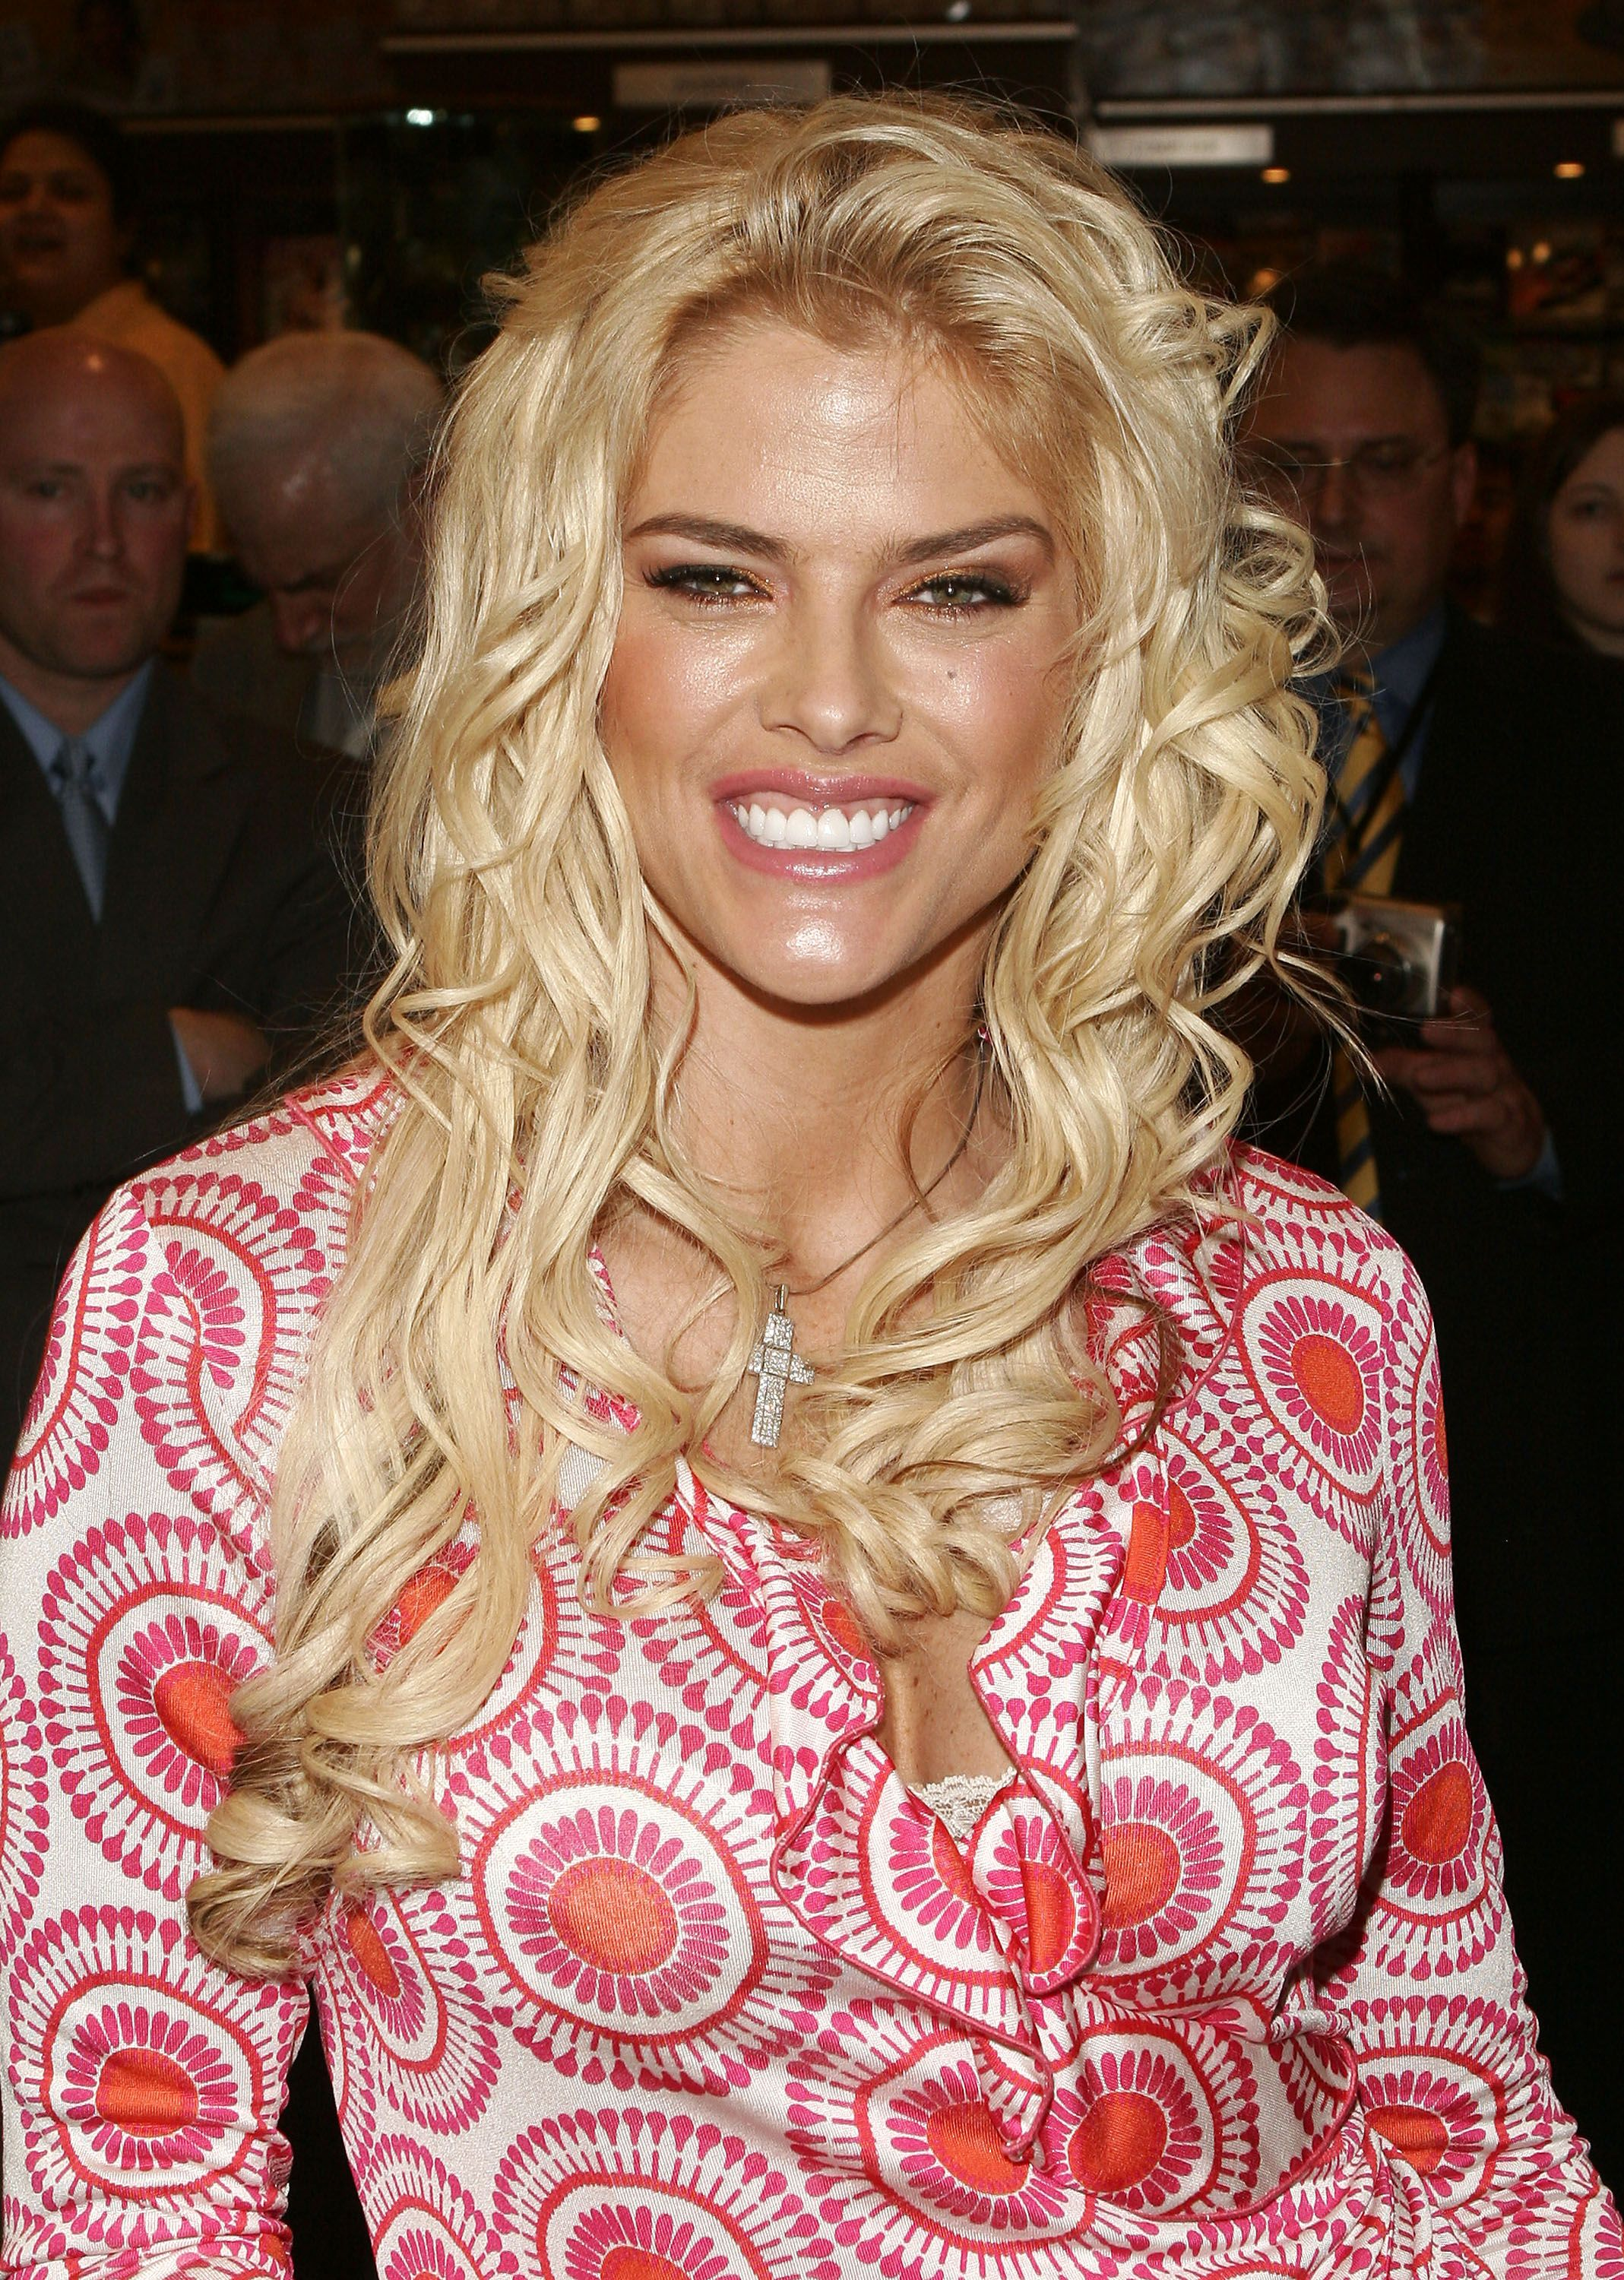 Anna Nicole Smith United States naked (63 photo), Sexy, Paparazzi, Boobs, butt 2019